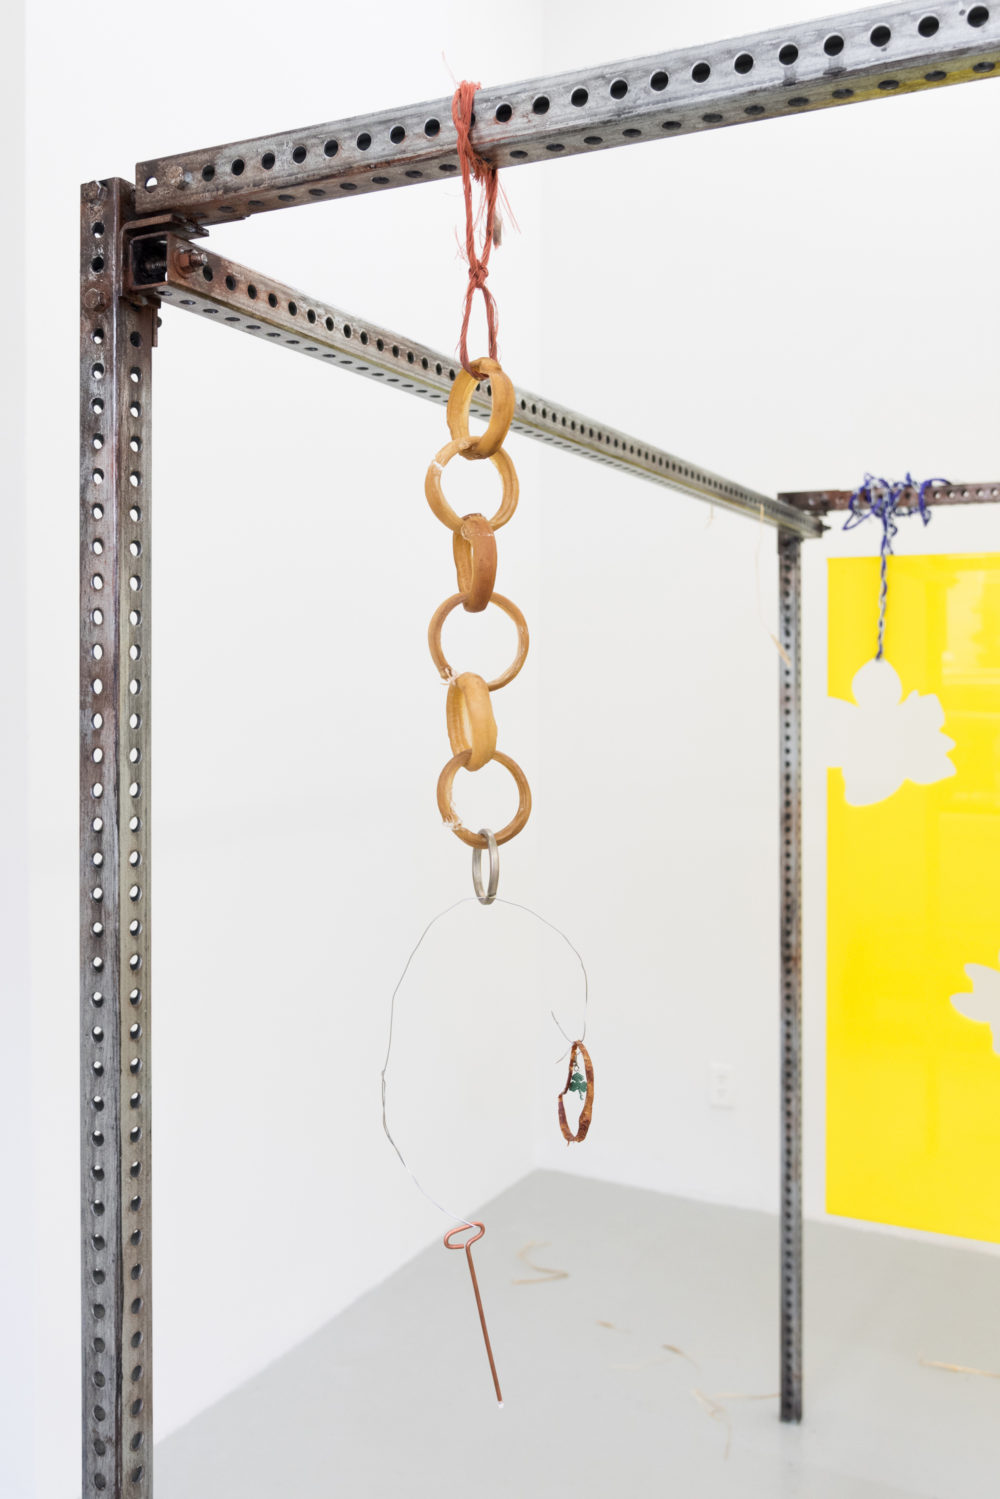 Gunnar Tchida Untitled, 2016 Rawhide, copper, sausage-casing ring, clover earring